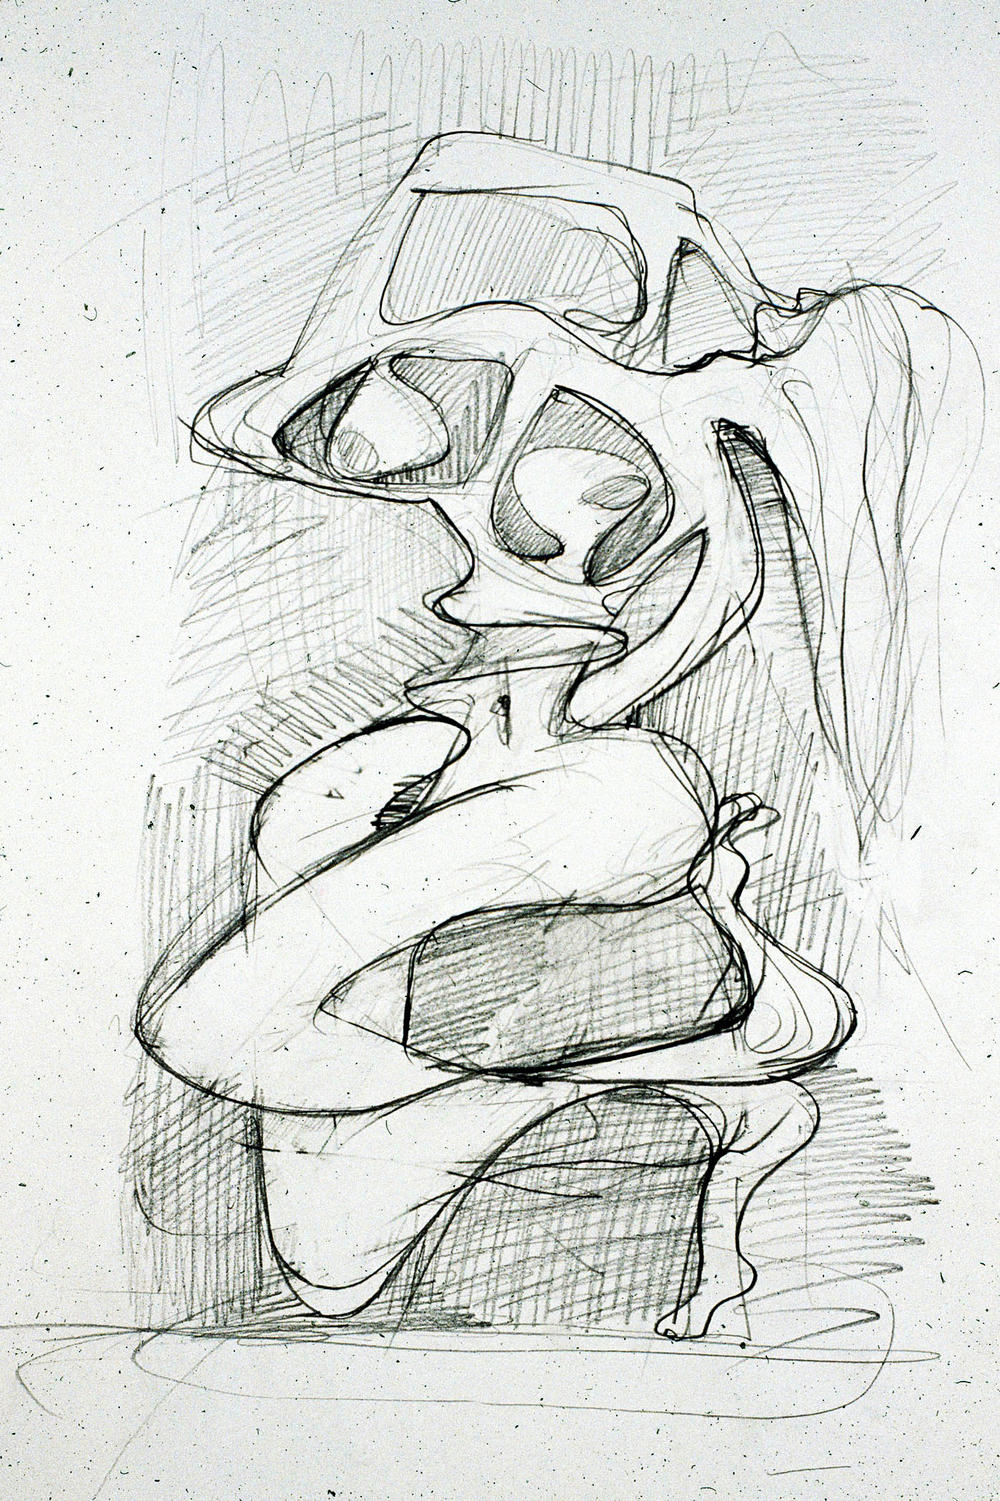 2005 24x18 in. Graphite on paper